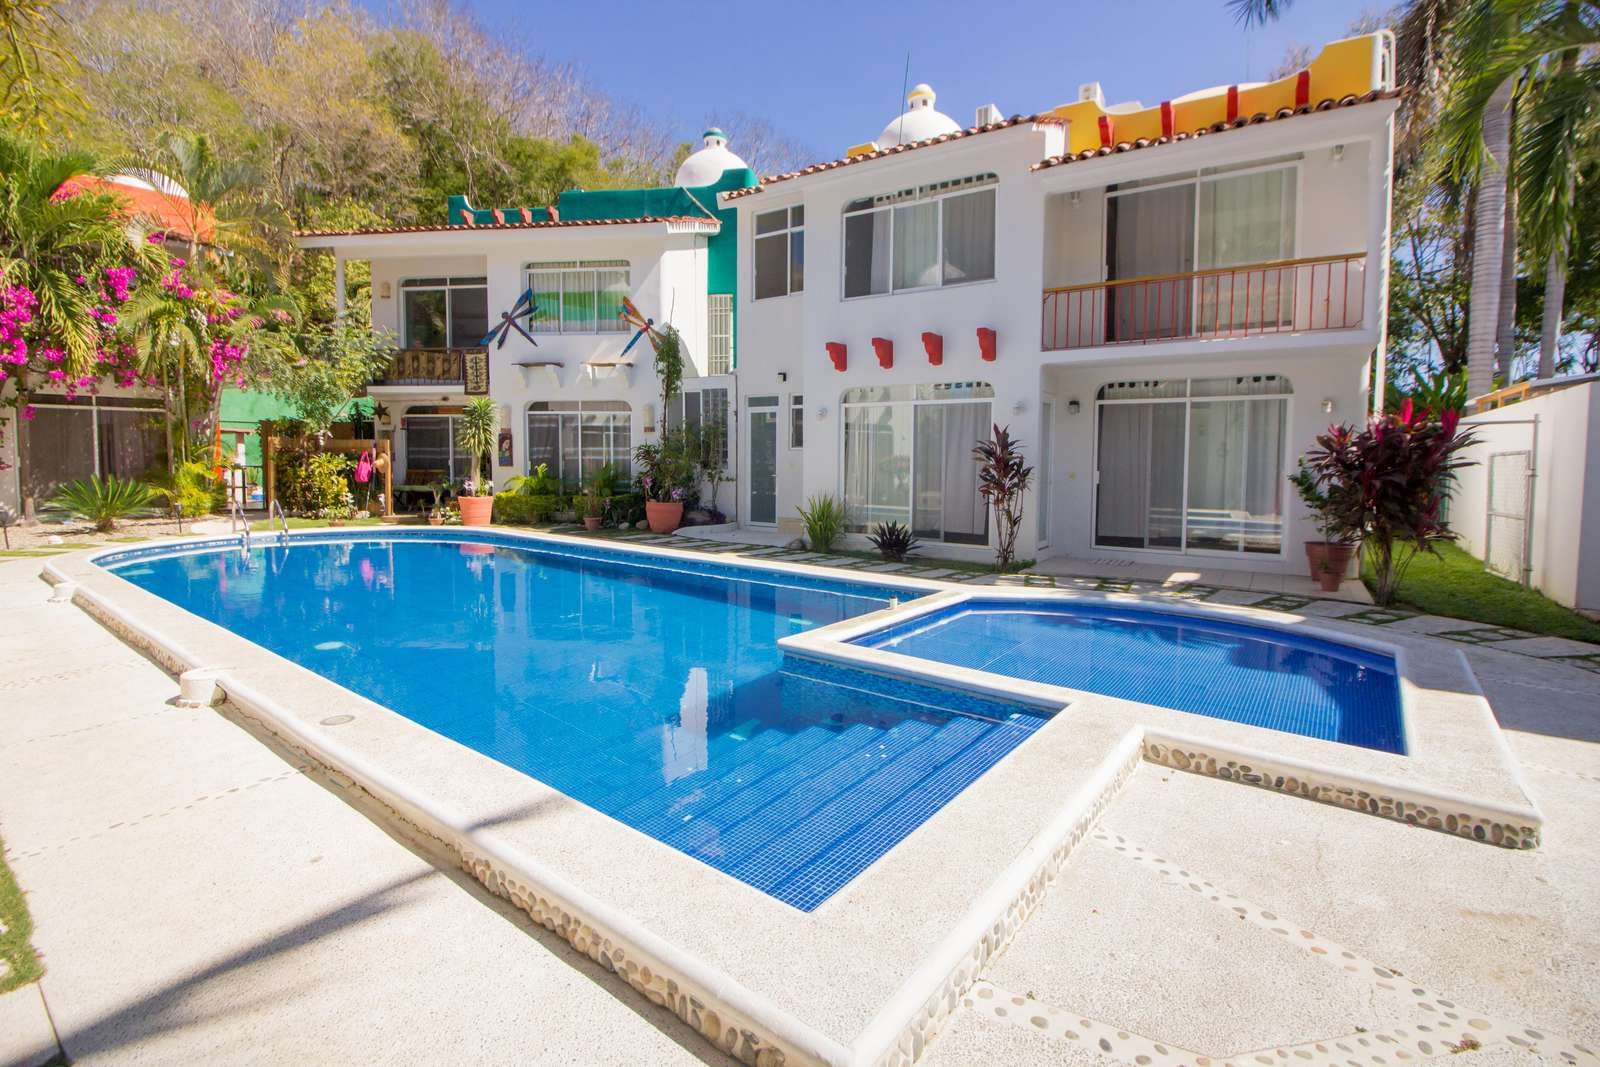 Shared pool in quiet gated community - property